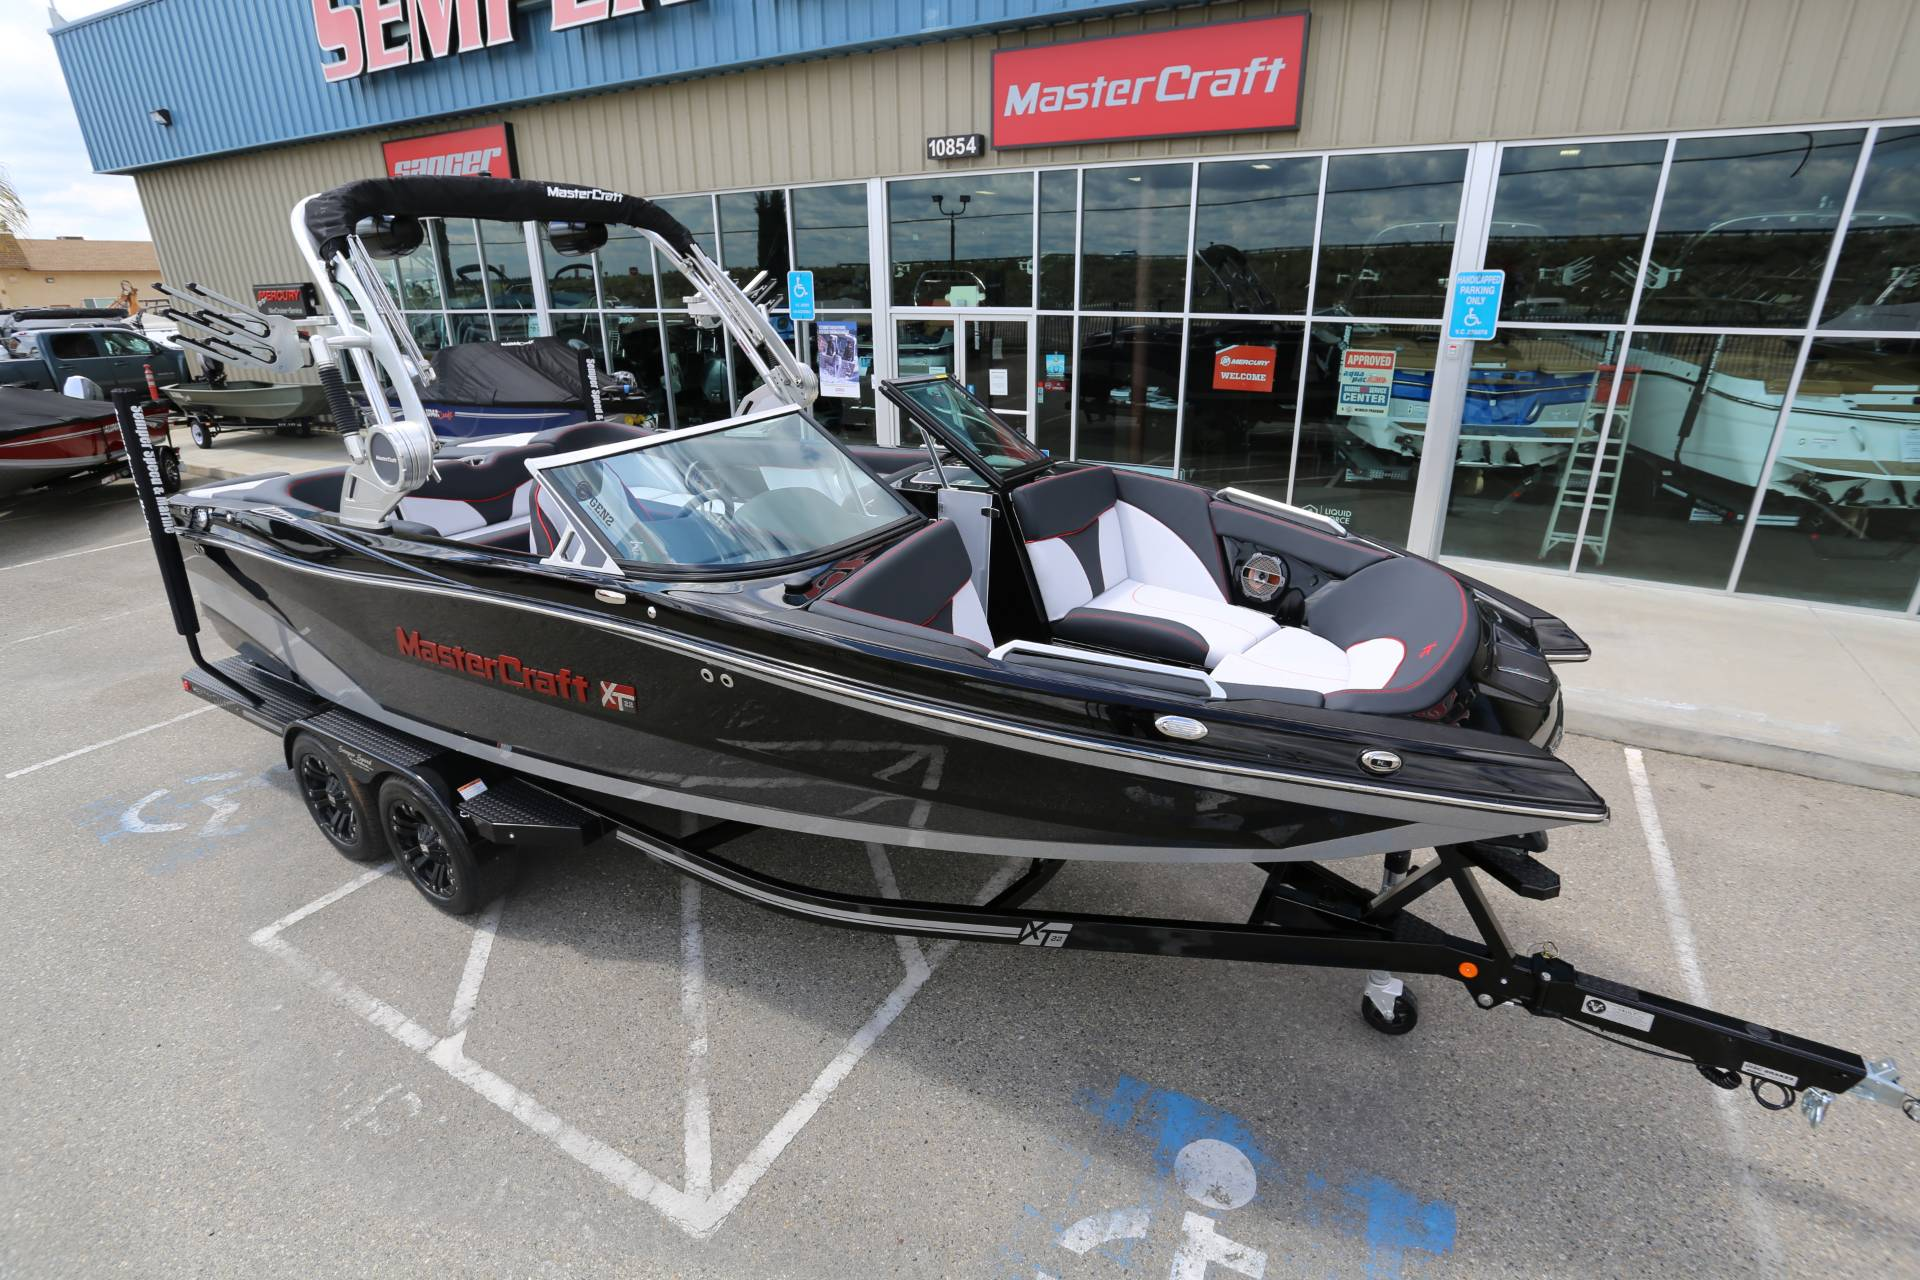 2020 Mastercraft XT22 in Madera, California - Photo 19